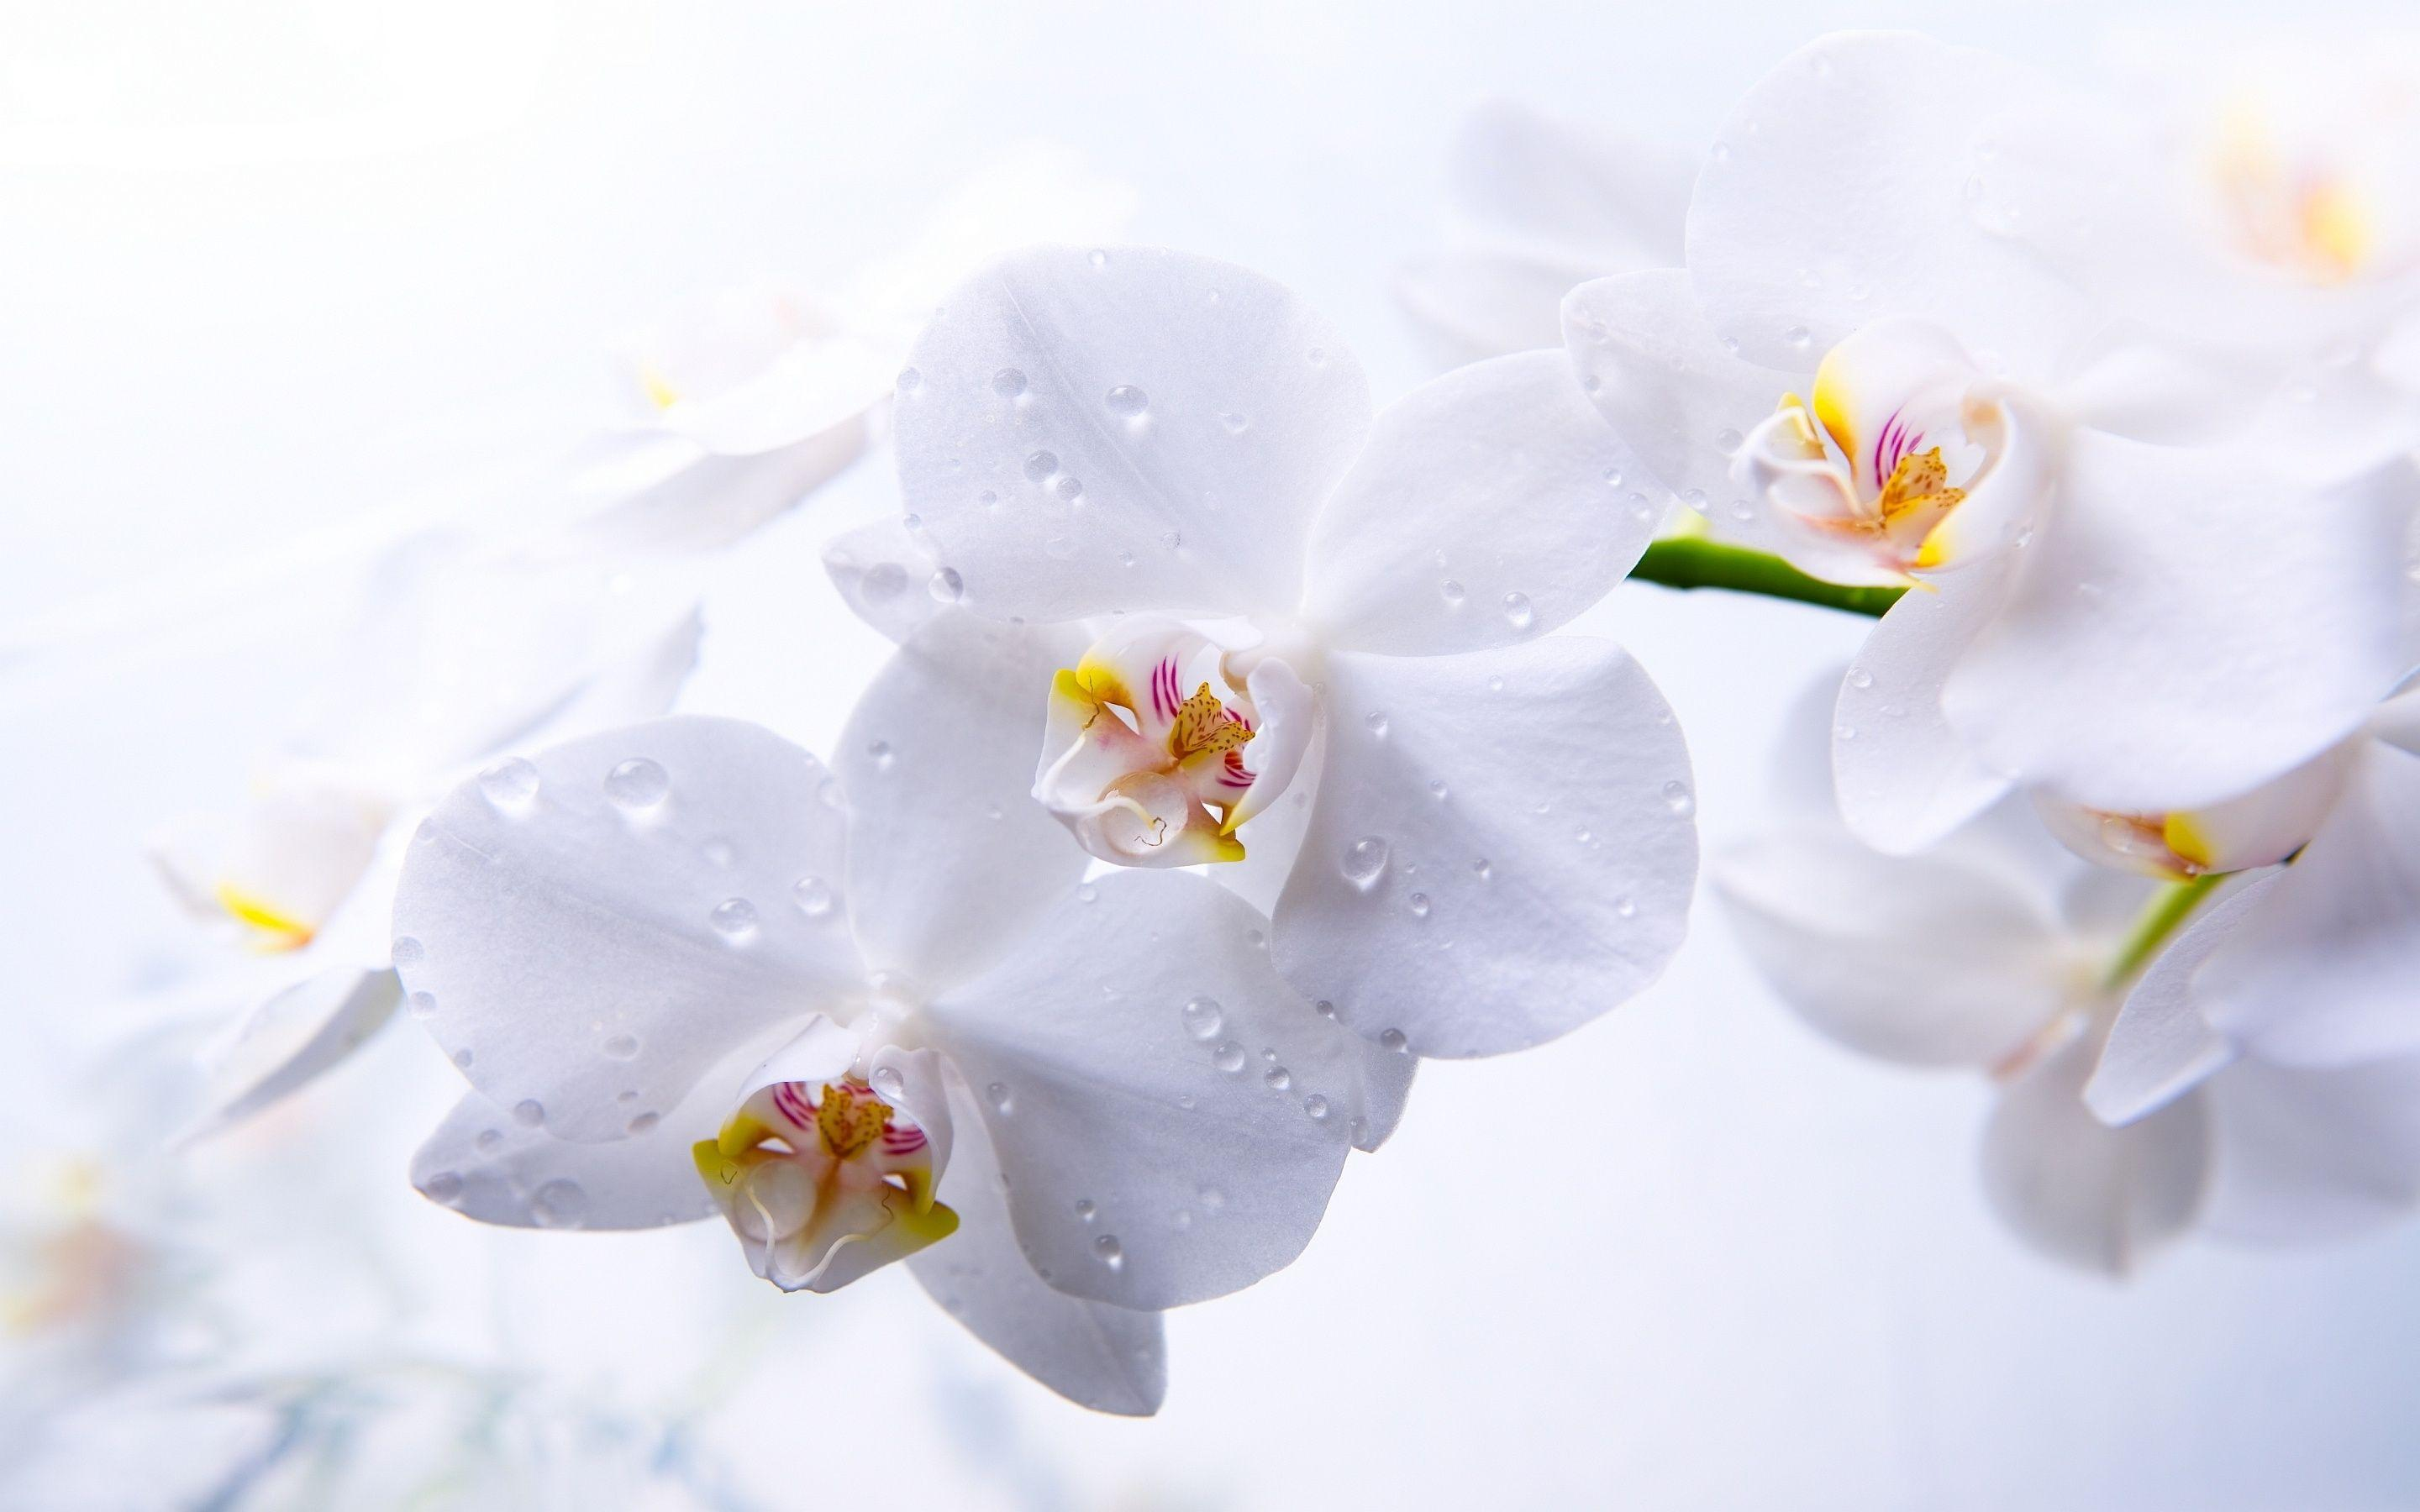 orchid wallpapers backgrounds images - photo #5